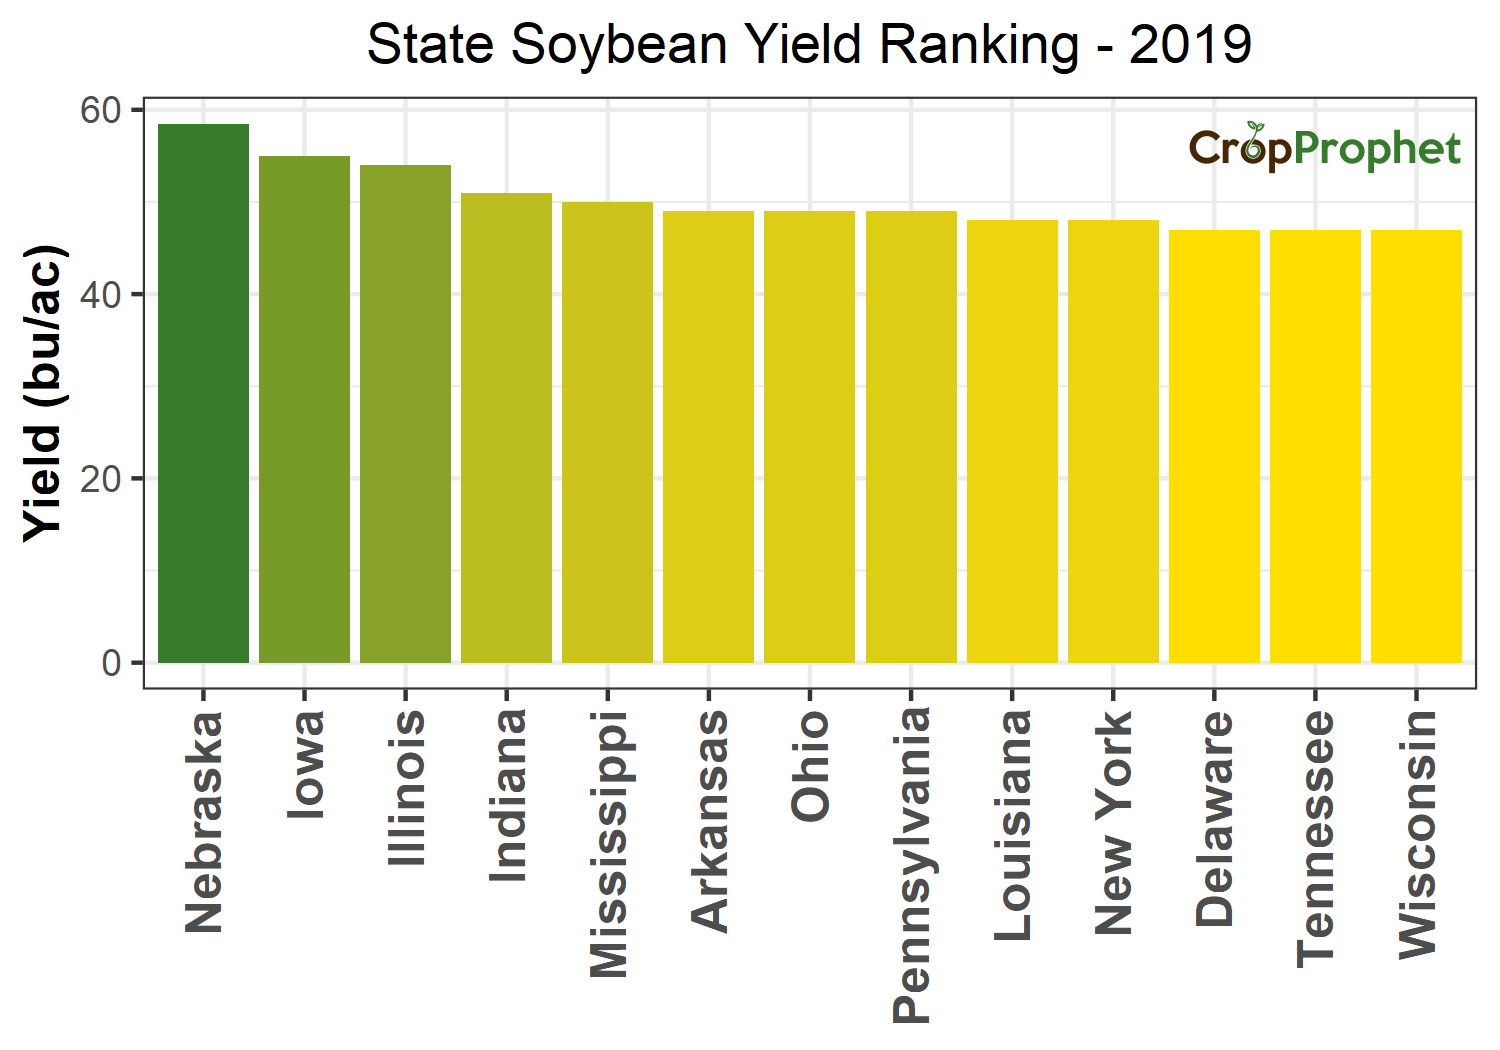 Soybean Production by State - 2019 Rankings